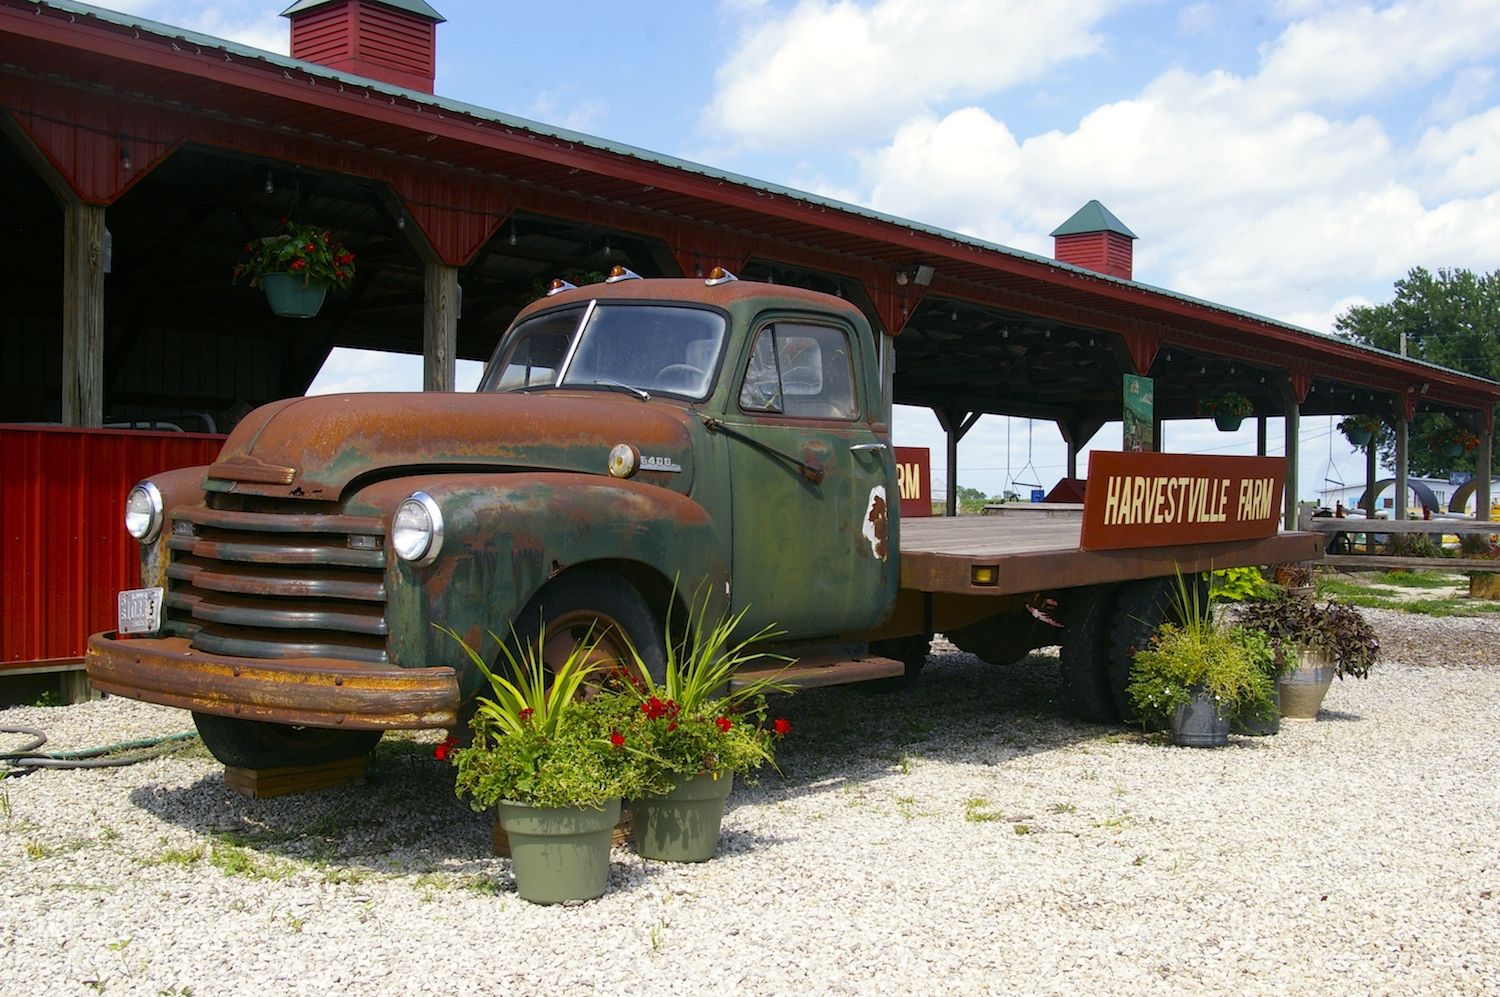 Vintage pickup truck at Harvestville Farms in Donnellson, Iowa